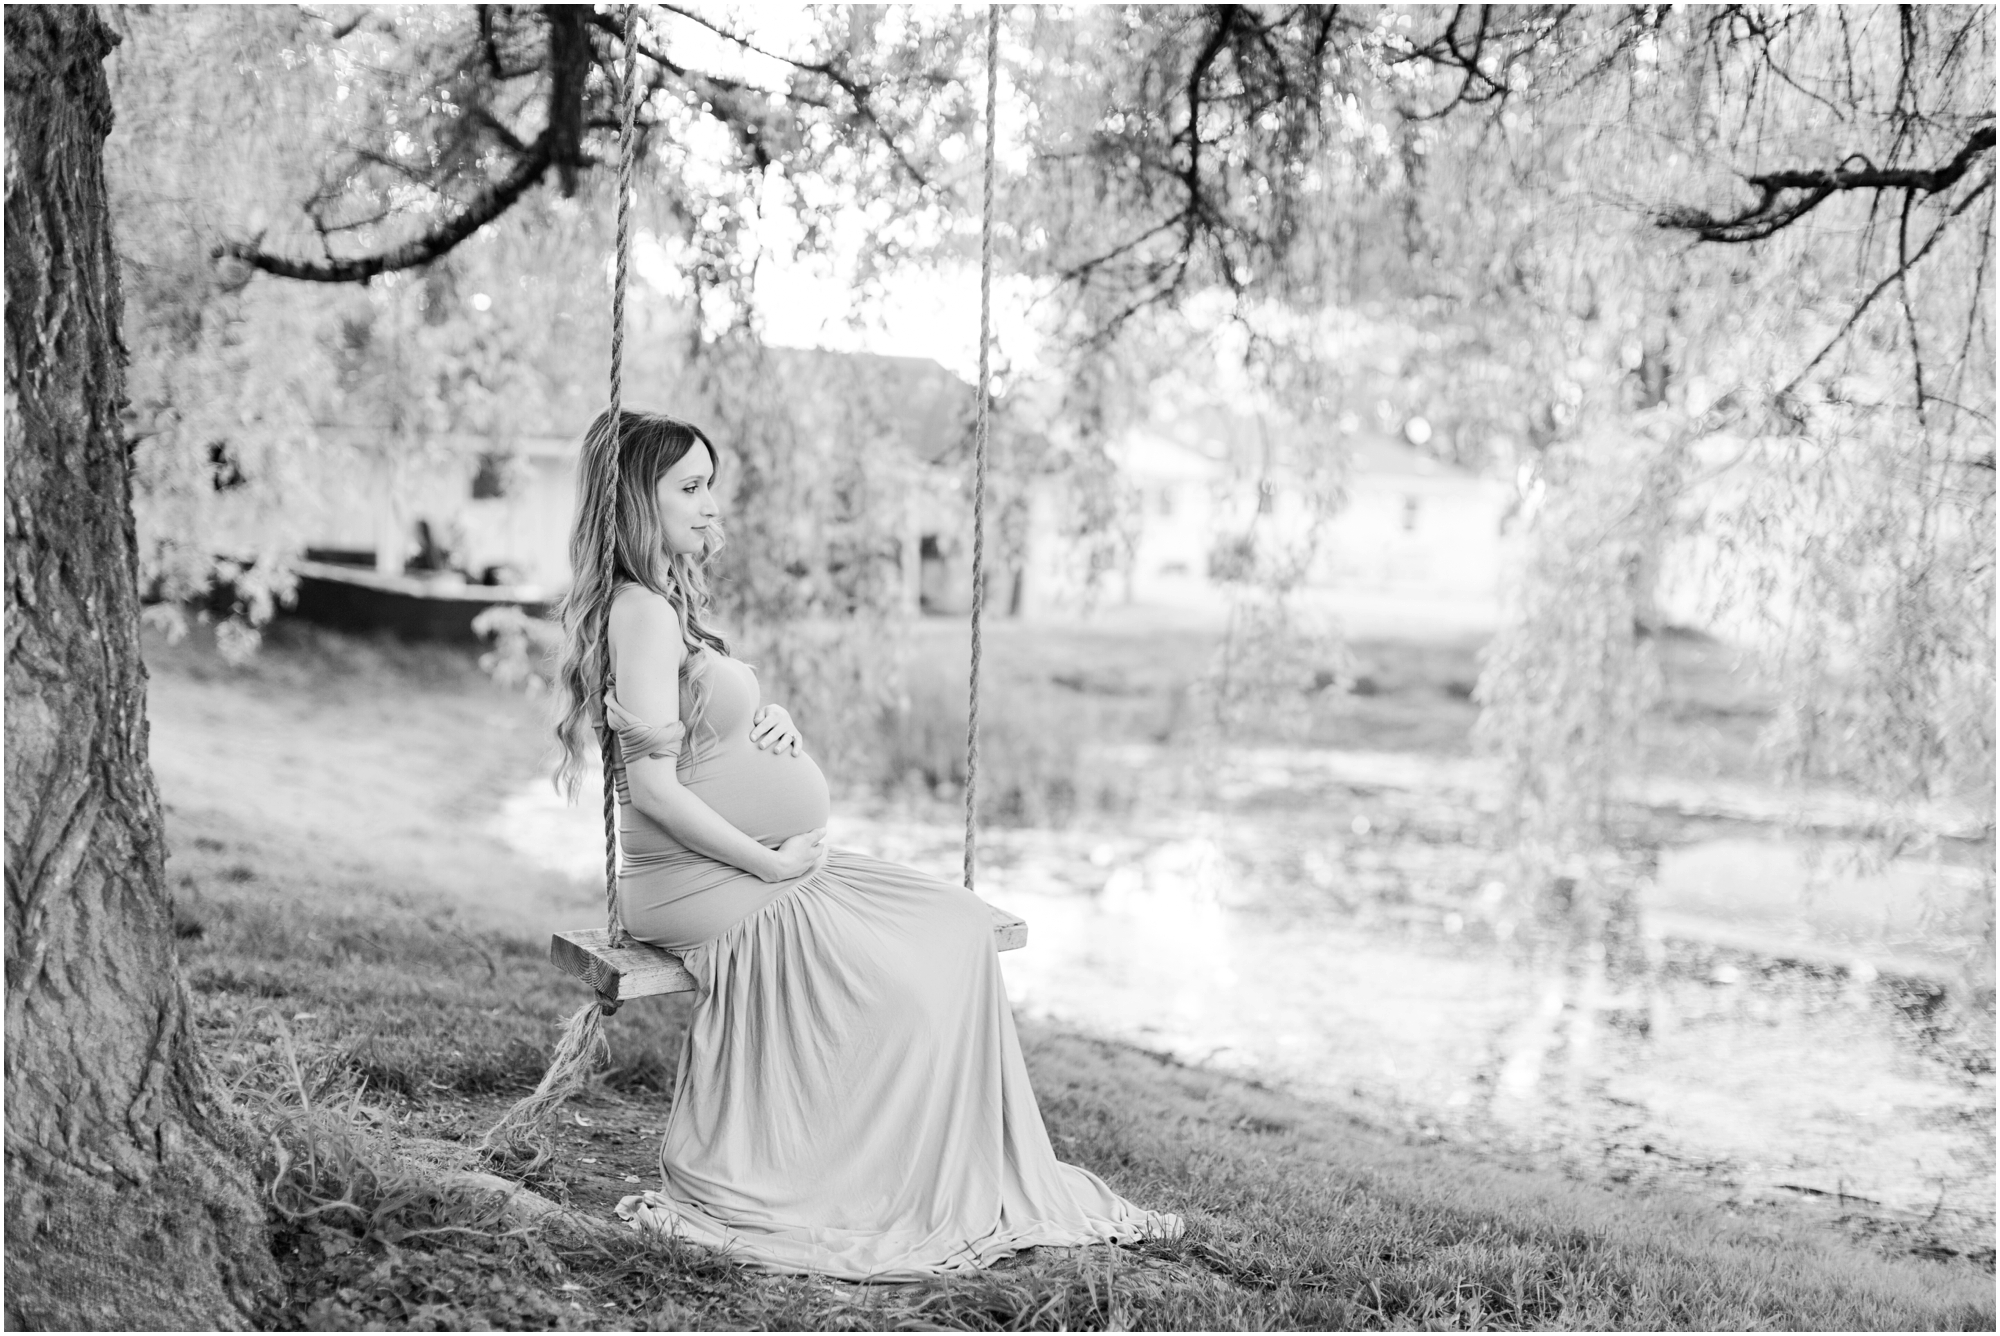 Wild Hearts Farm maternity shoot in Tacoma. Photos by Briana Calderon Photography based in the greater Seattle Tacoma Area._1217.jpg